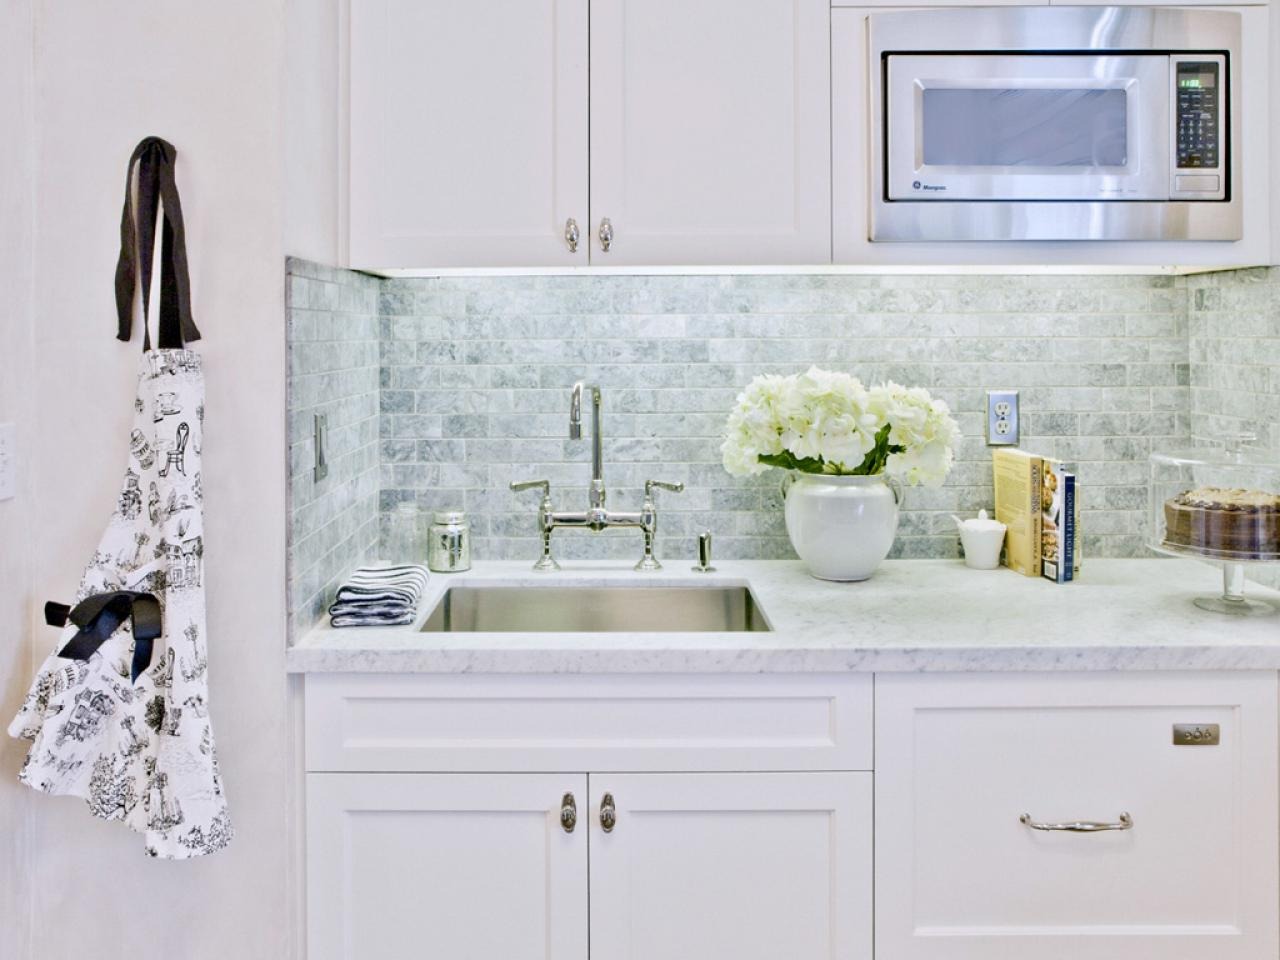 Subway tile backsplashes pictures ideas tips from hgtv for Subway tile designs